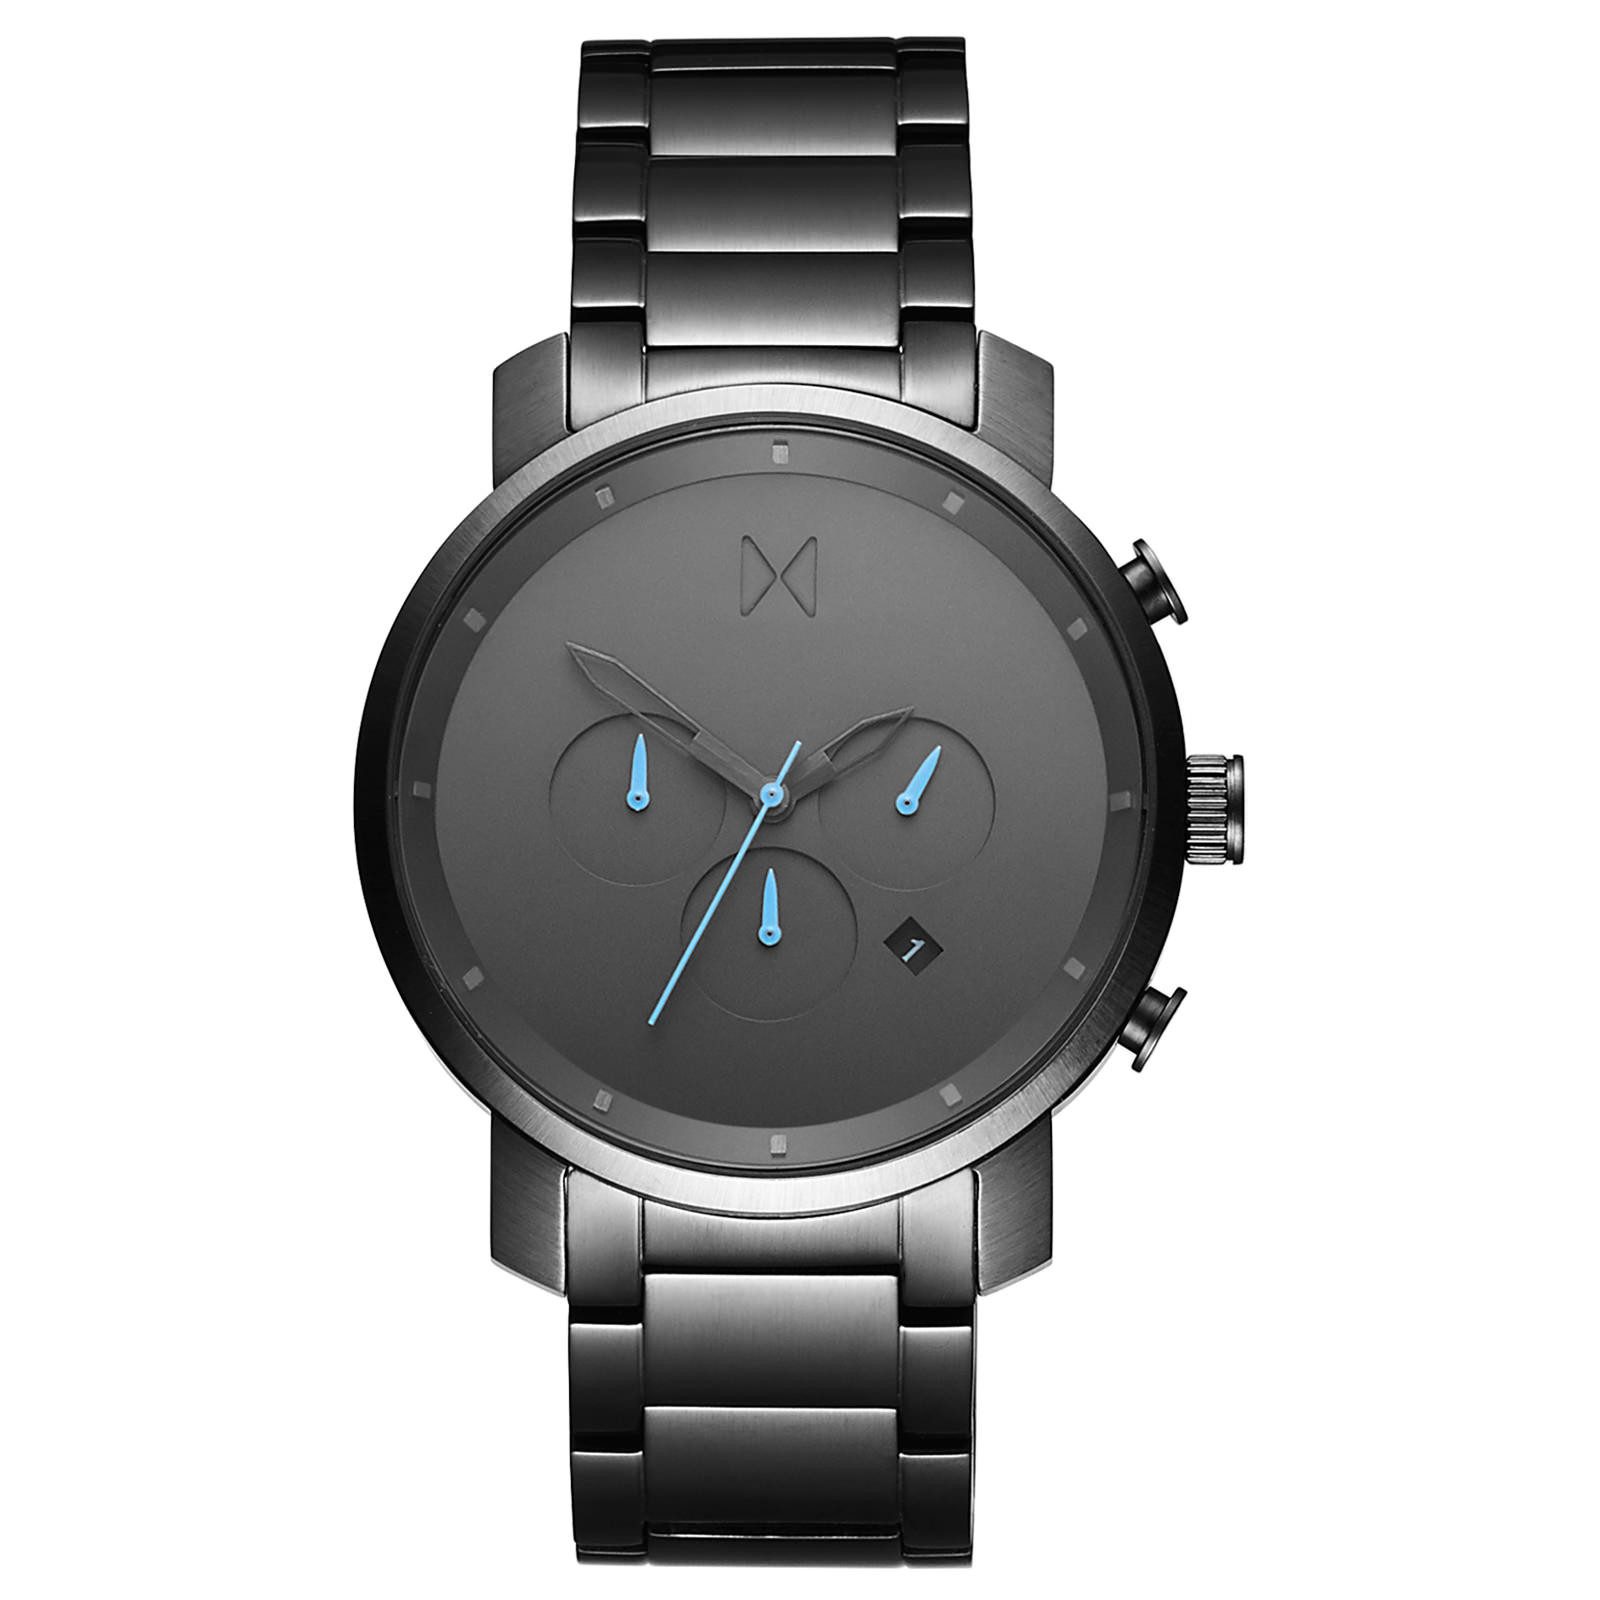 MVMT watches review